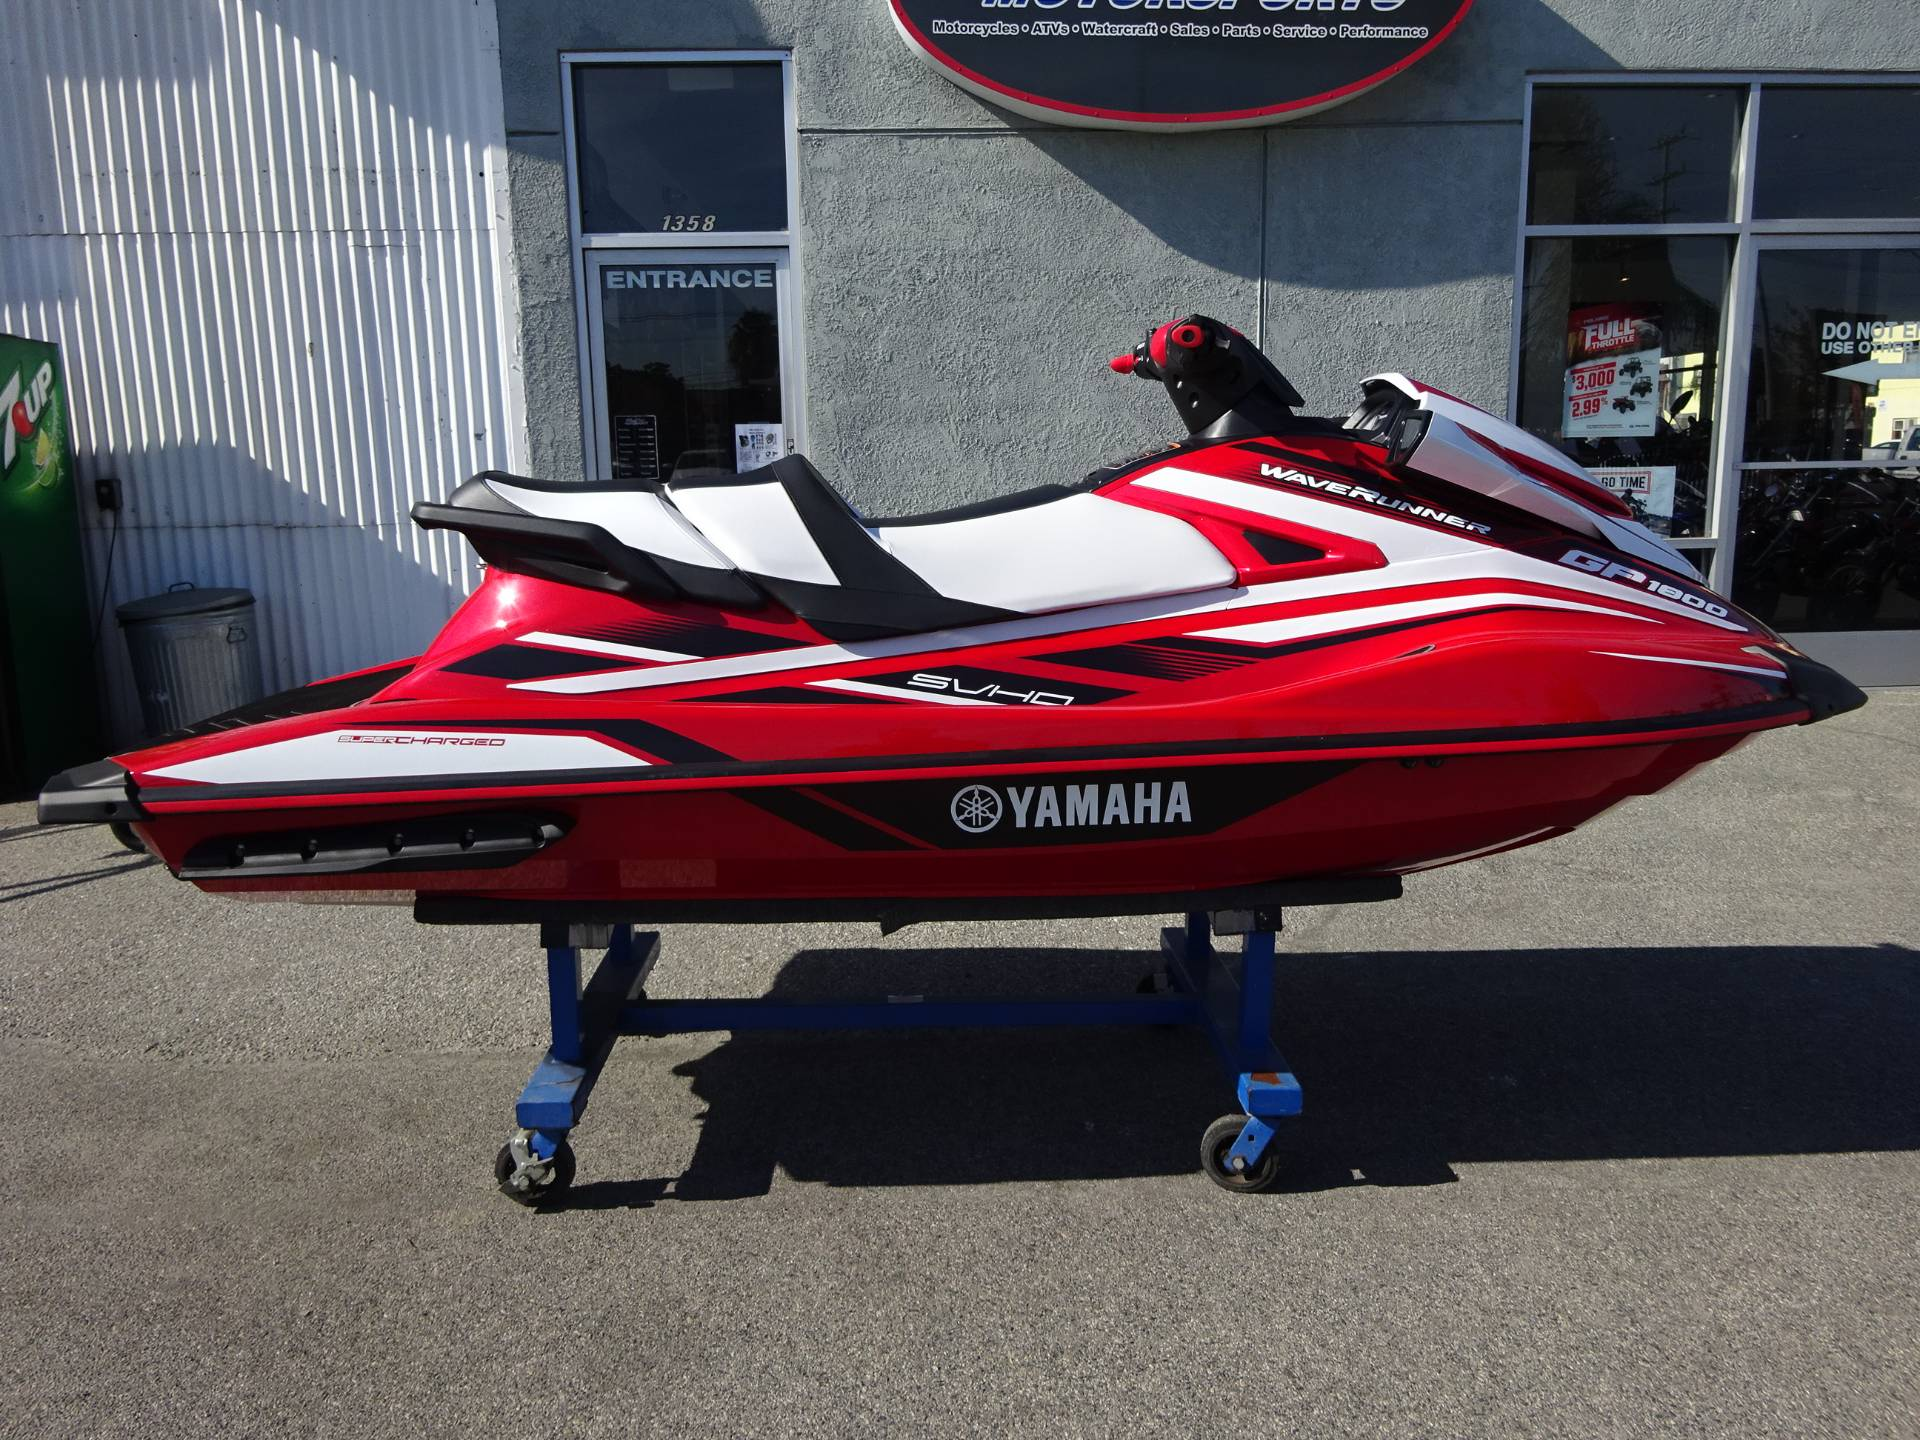 New 2017 yamaha gp 1800 watercraft in harbor city ca for Yamaha phone number